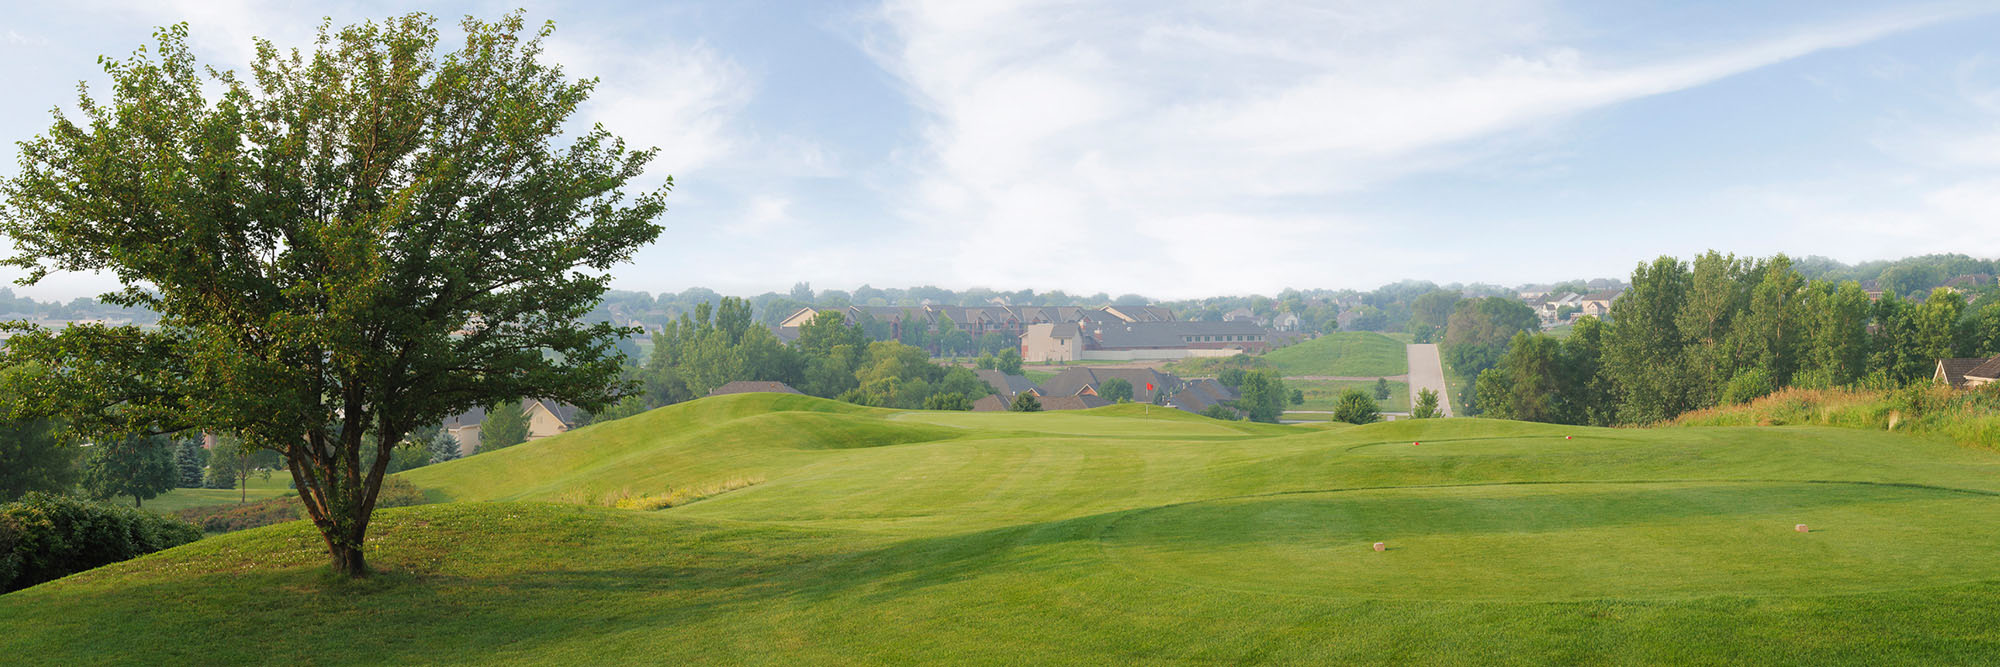 Golf Course Image - Pacific Springs No. 12